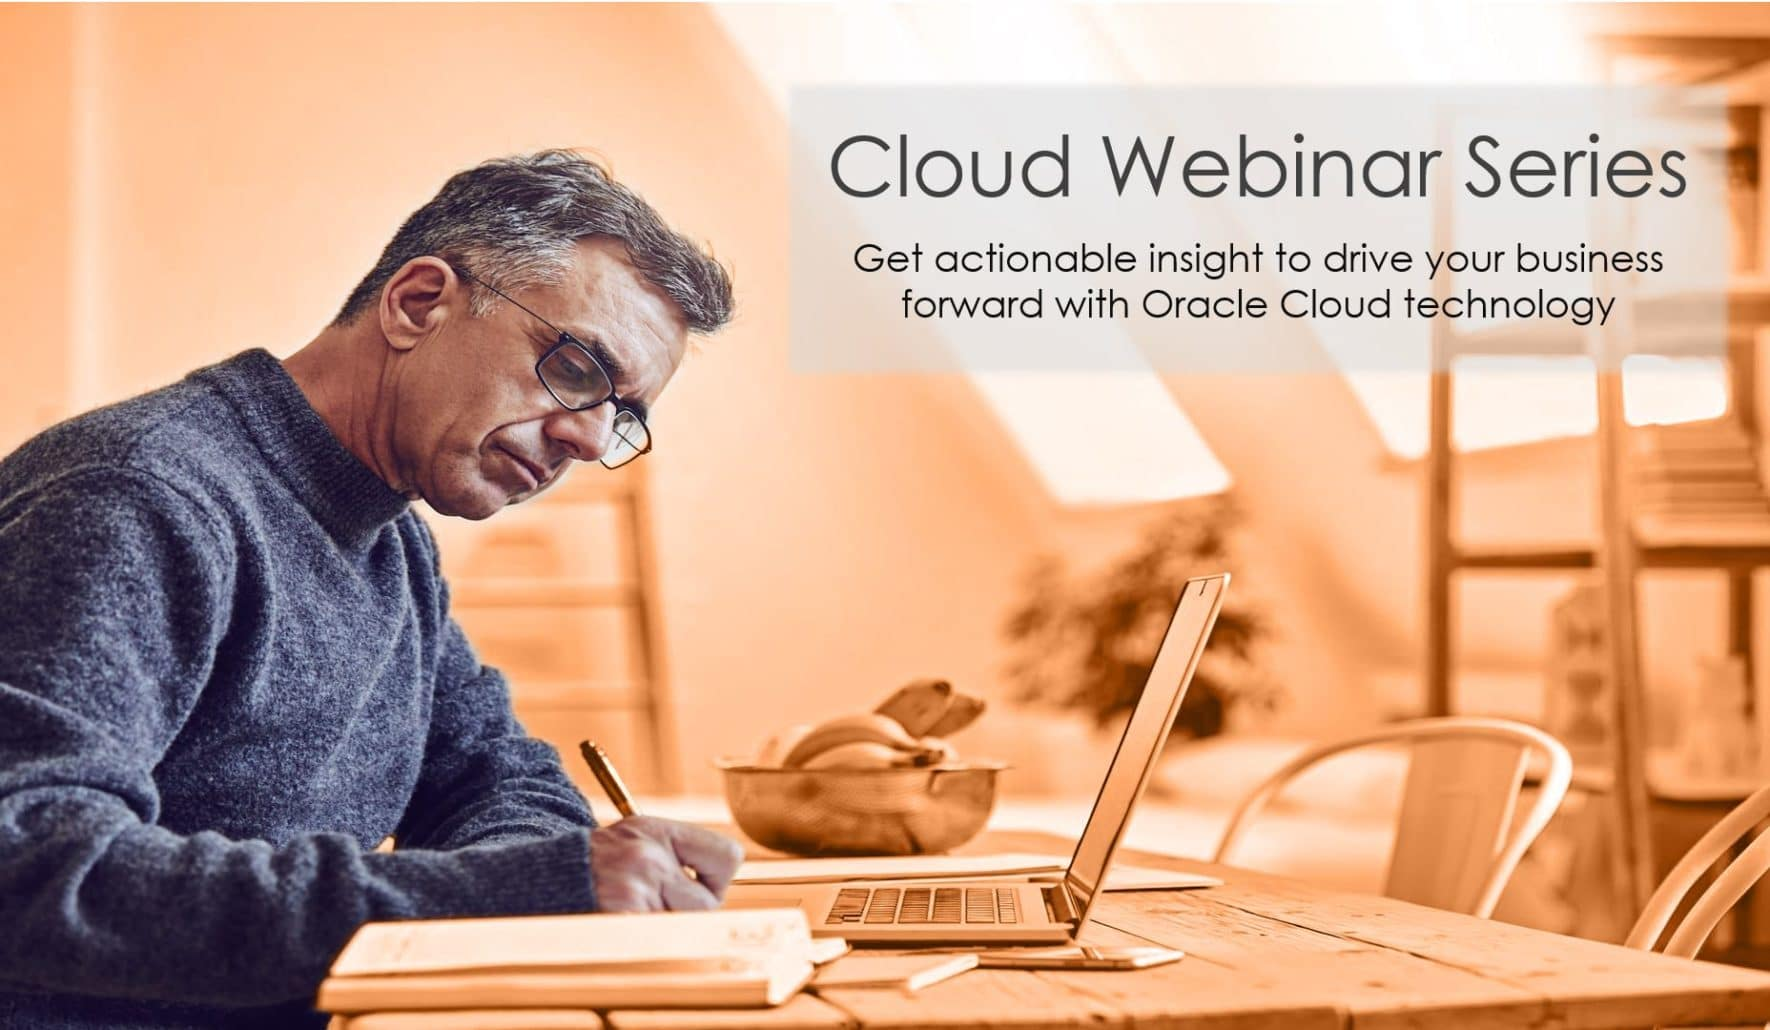 cloud webinar series